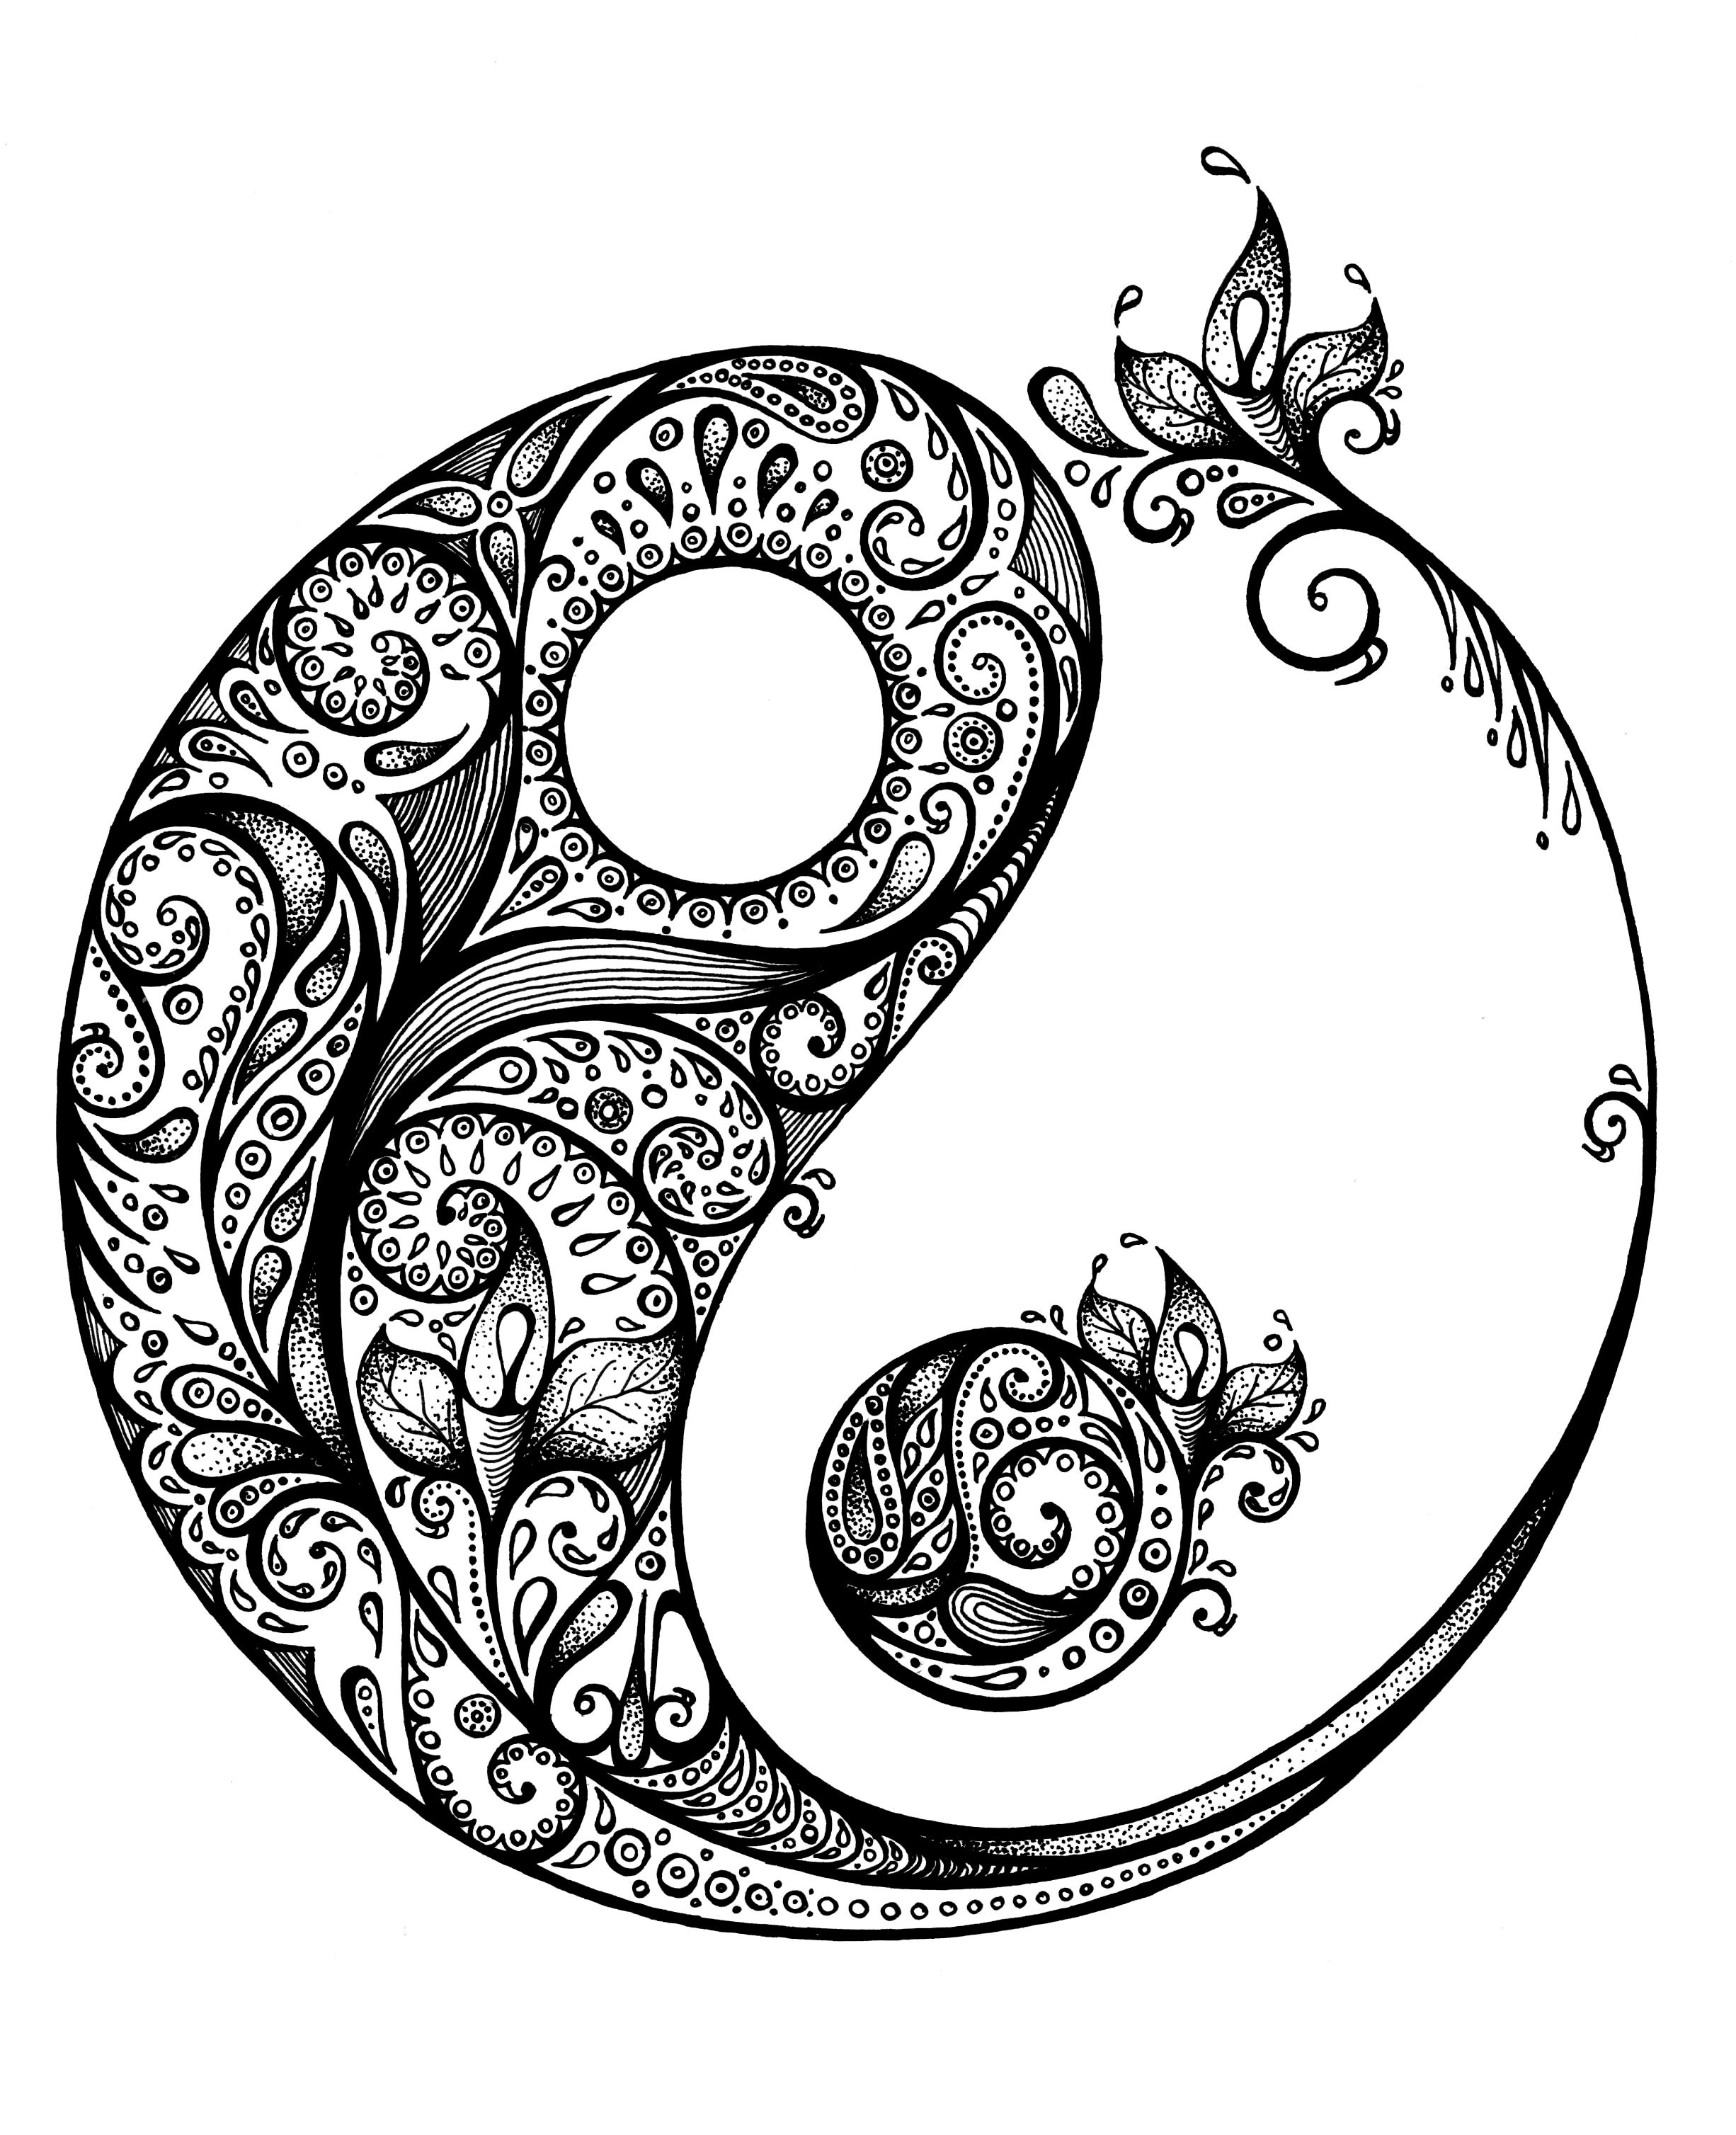 Yin yang zentangle zen tangle pinterest tatouages for Ying yang coloring pages